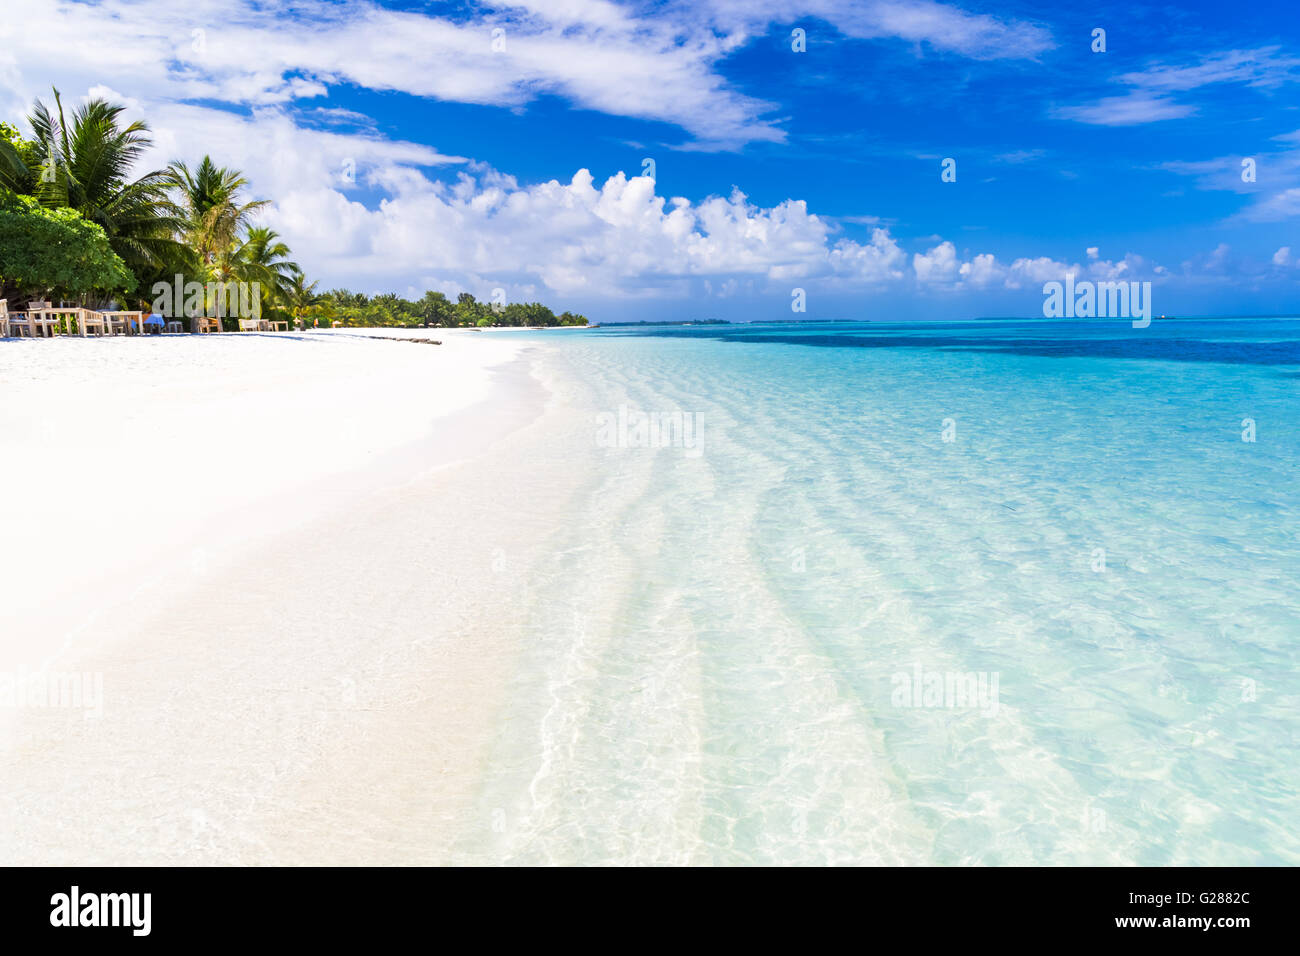 Amazing beach scenery in Maldives - Stock Image